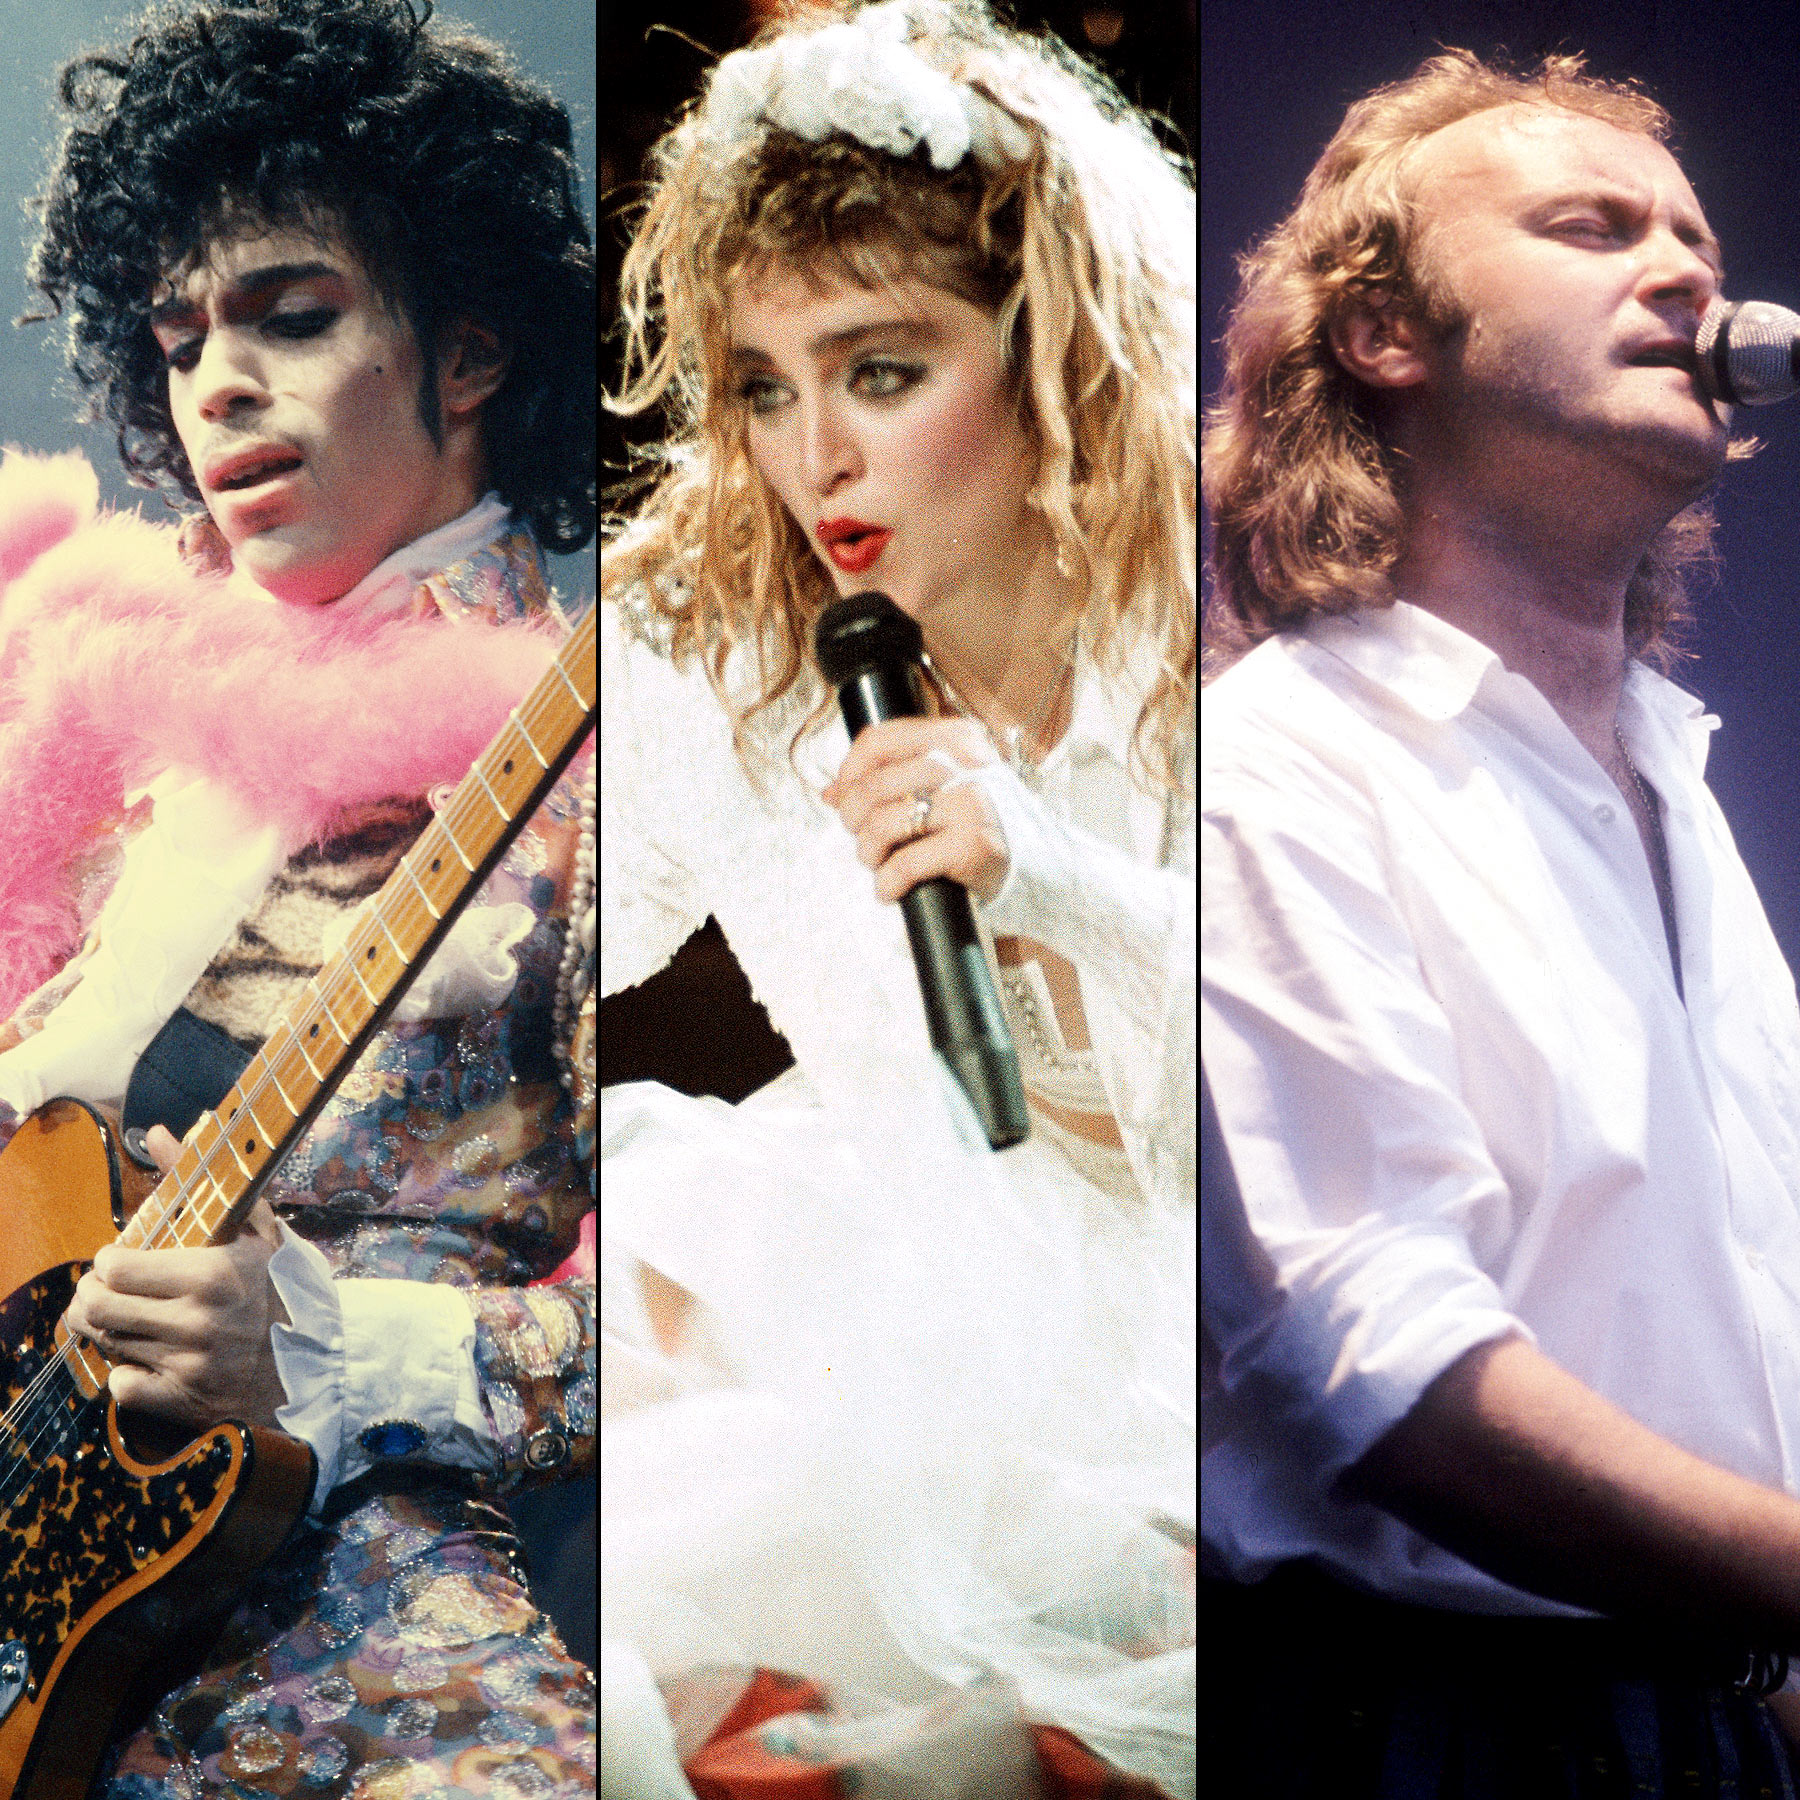 Prince, Madonna and Phil Collins